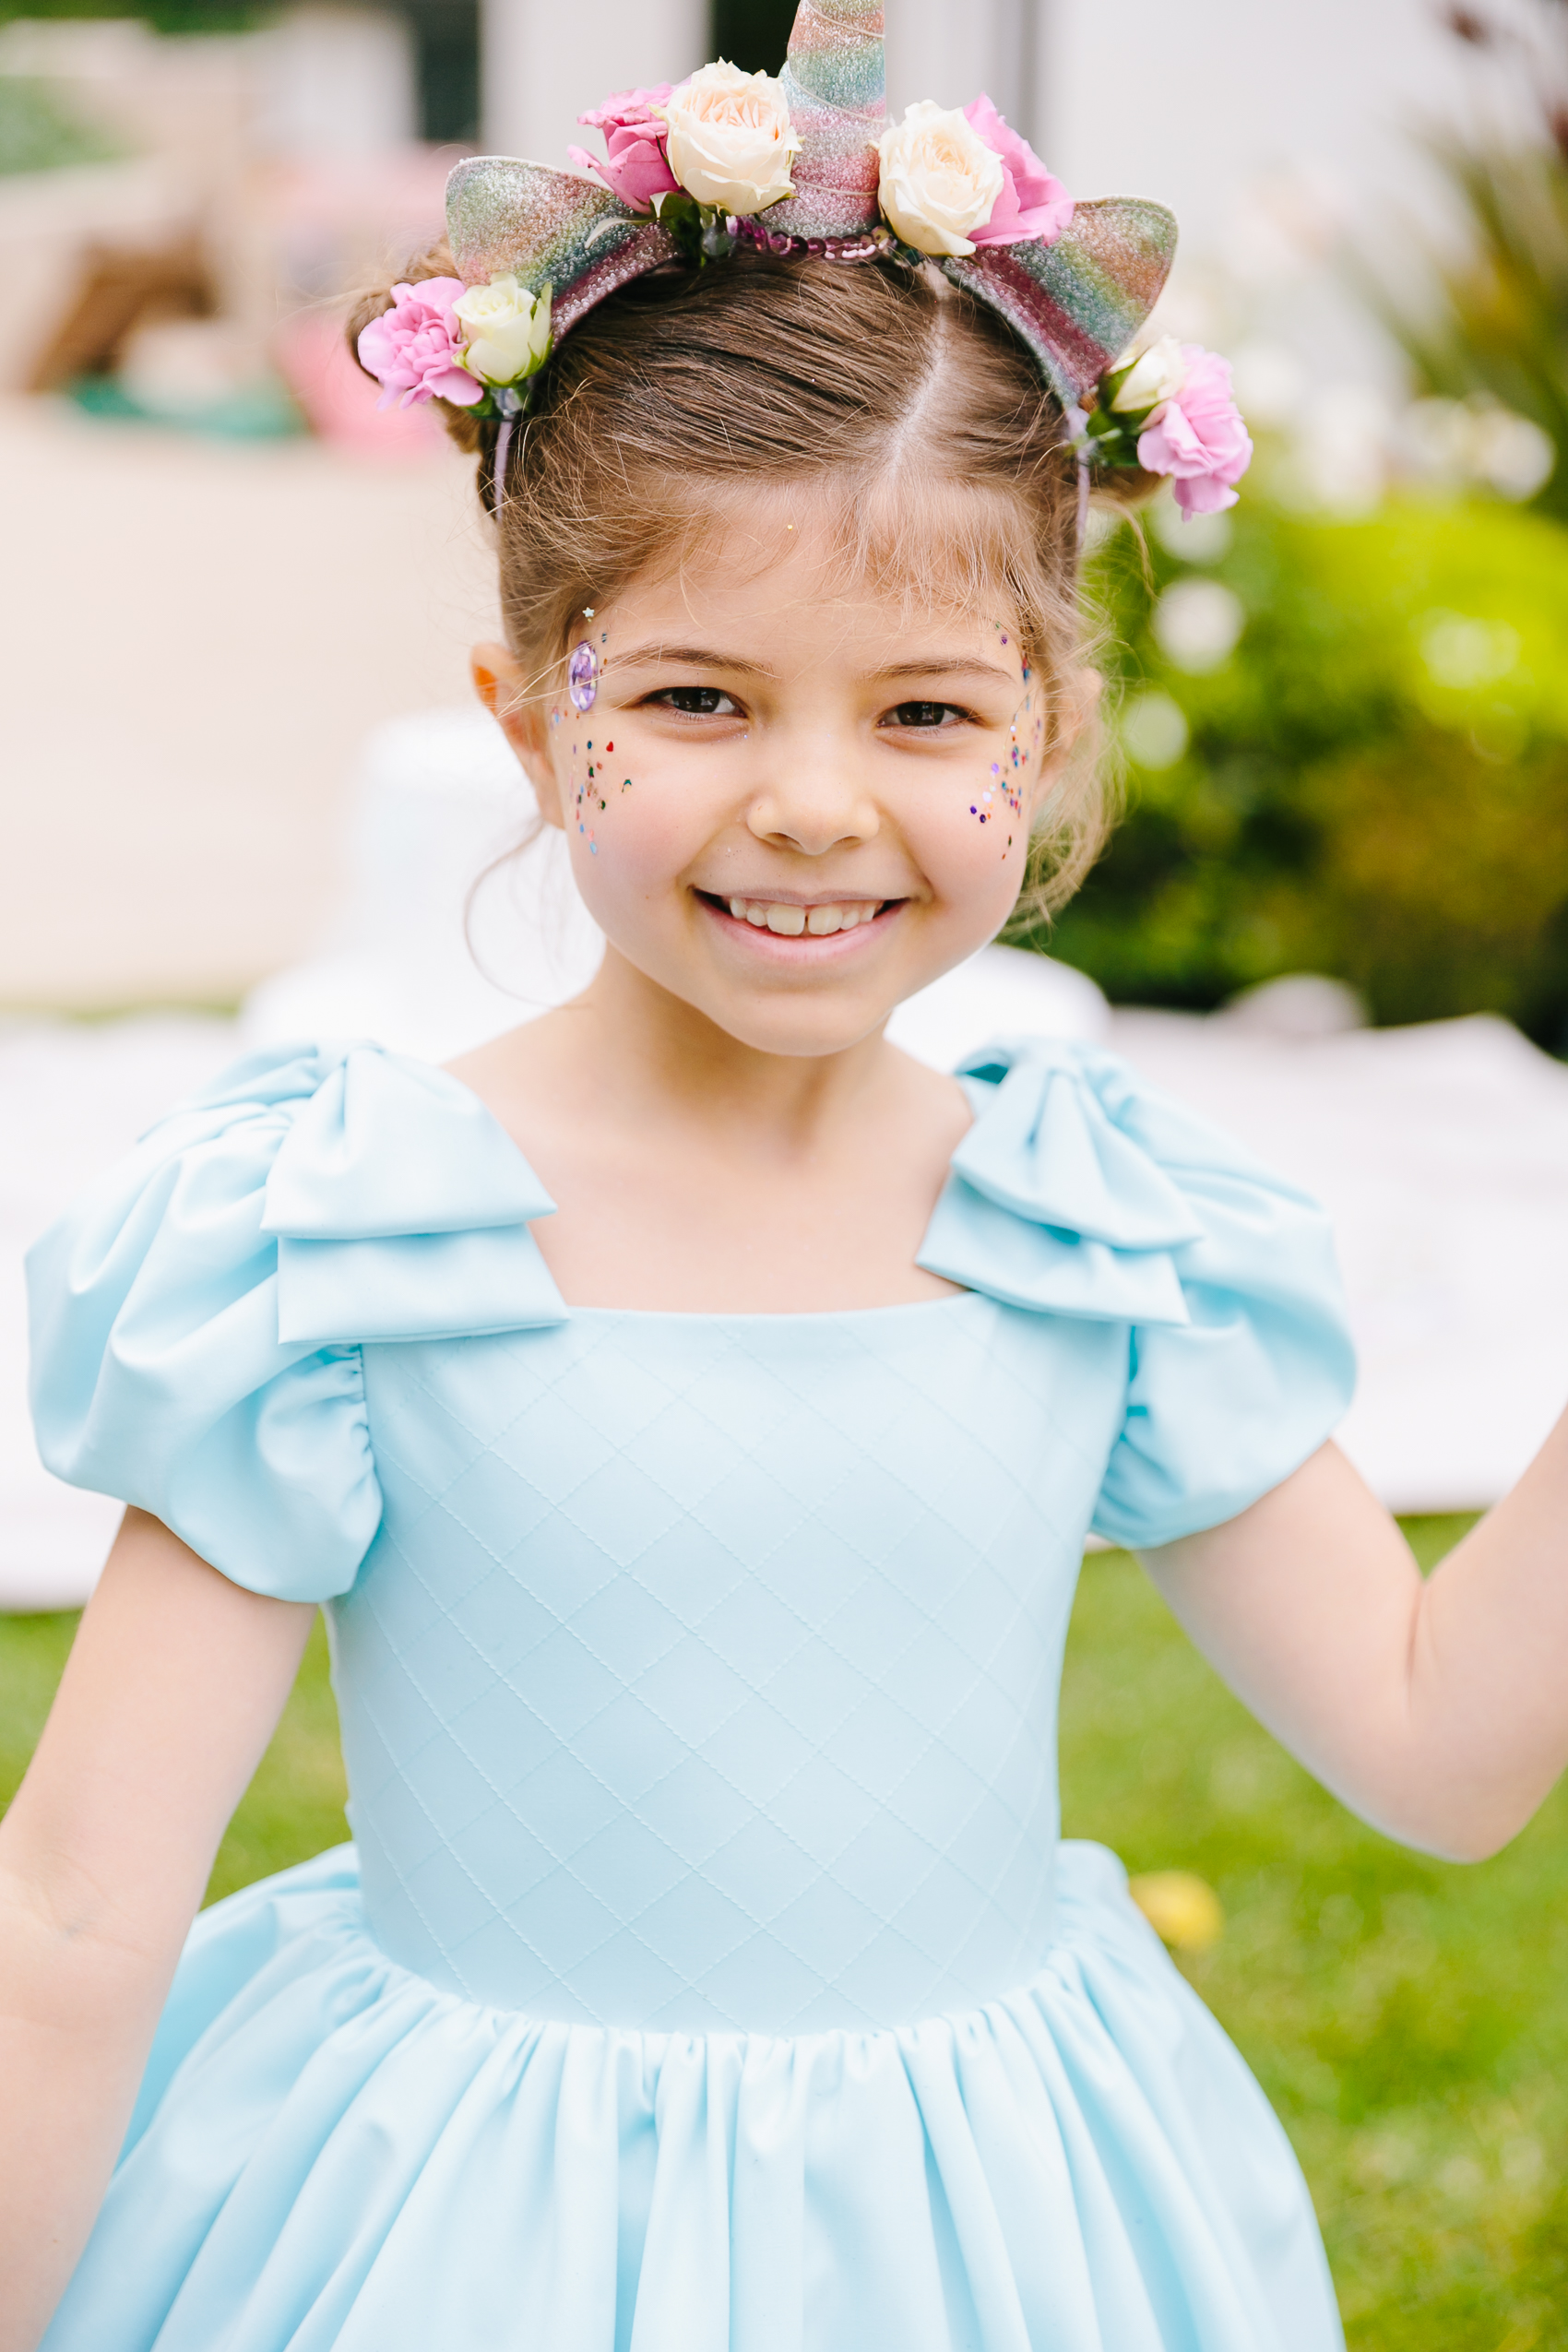 Los_Angeles_Family_Photographer_Luxury_Childrens_Party_Beverly_Hills_Unicorn_Birthday_Party-0884.jpg